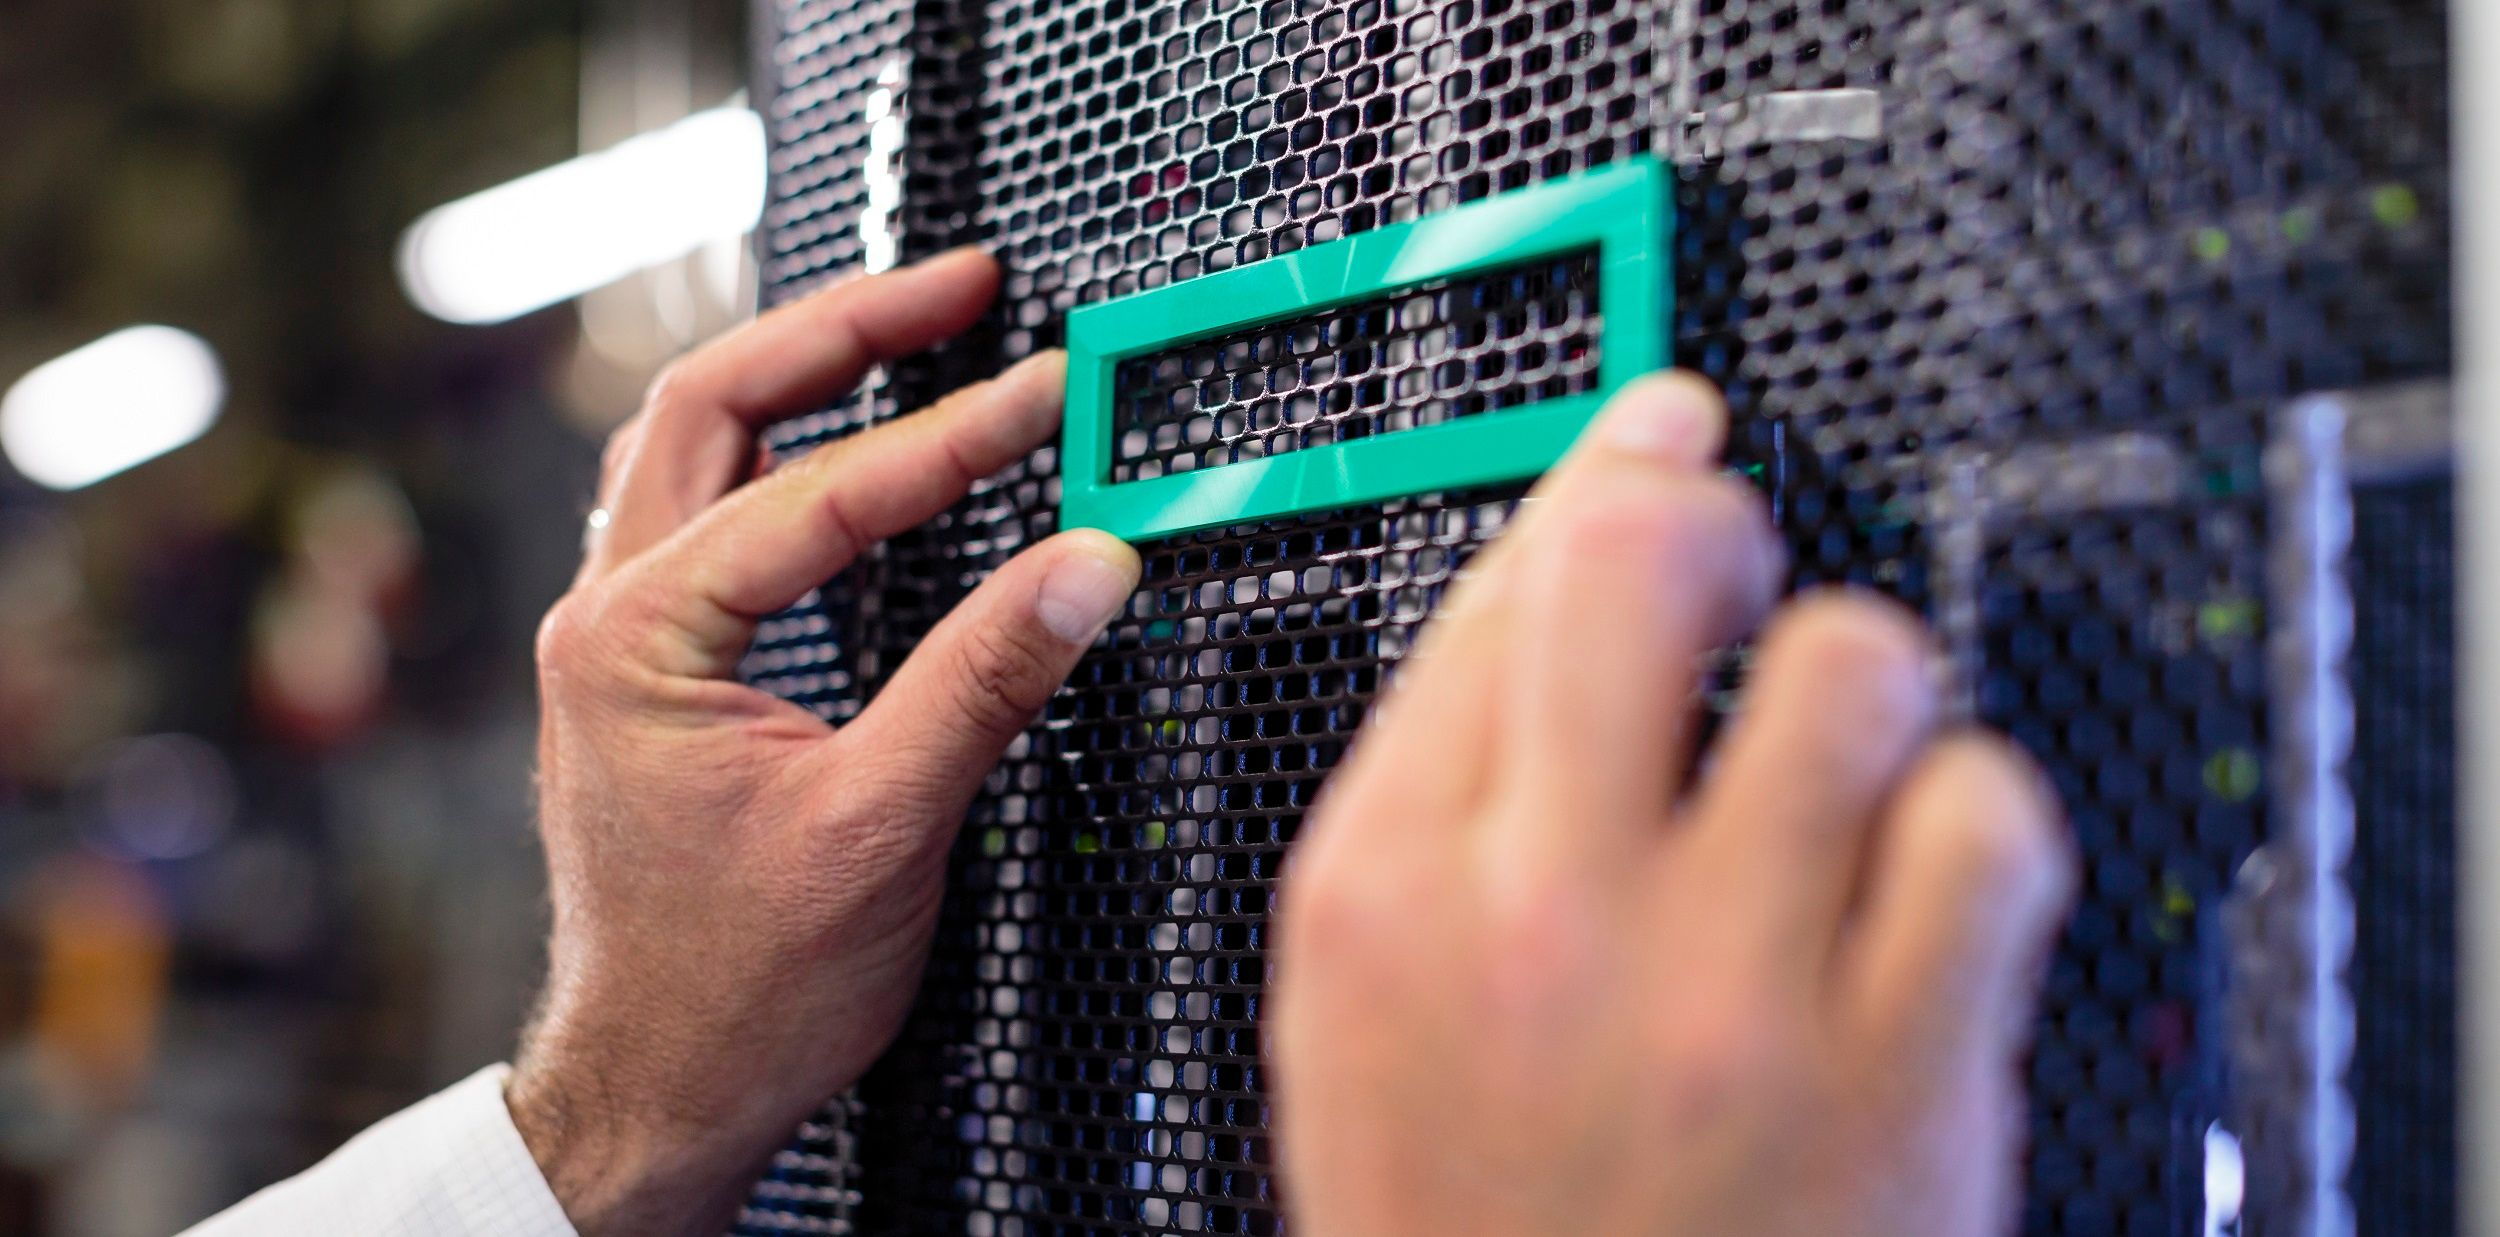 hpe careers hewlett packard enterprise community an interesting road for a successful technical career path